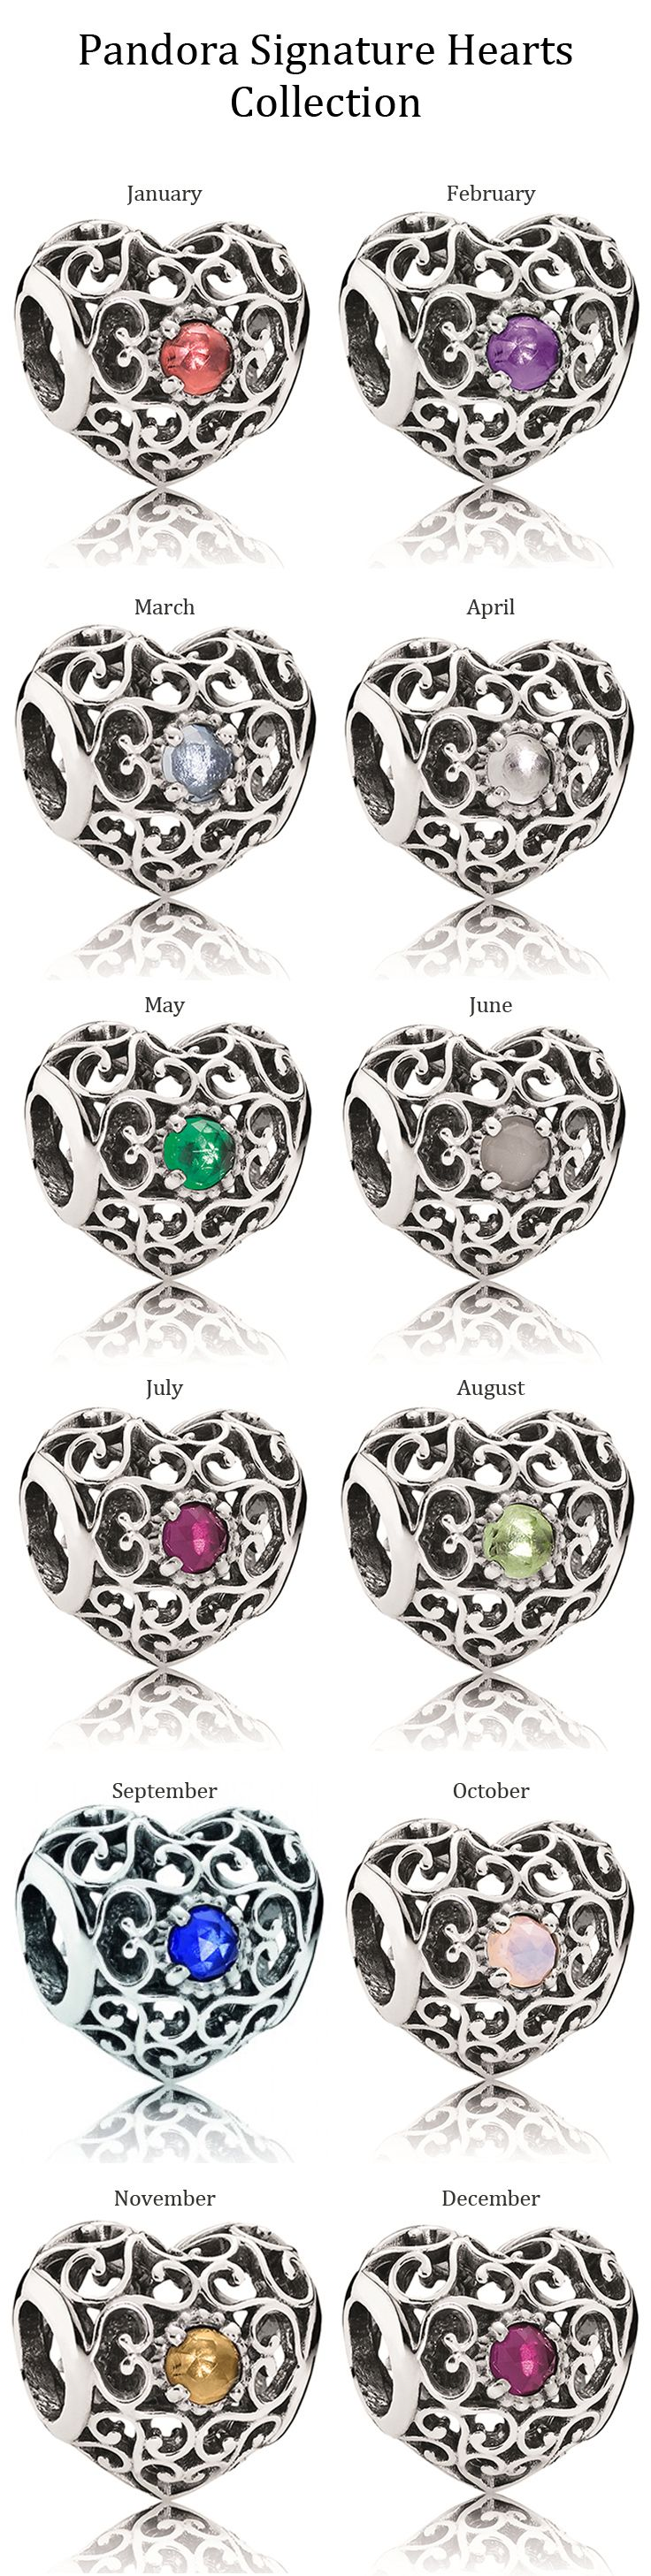 Pandora Signature Hearts Collection set with birthstones